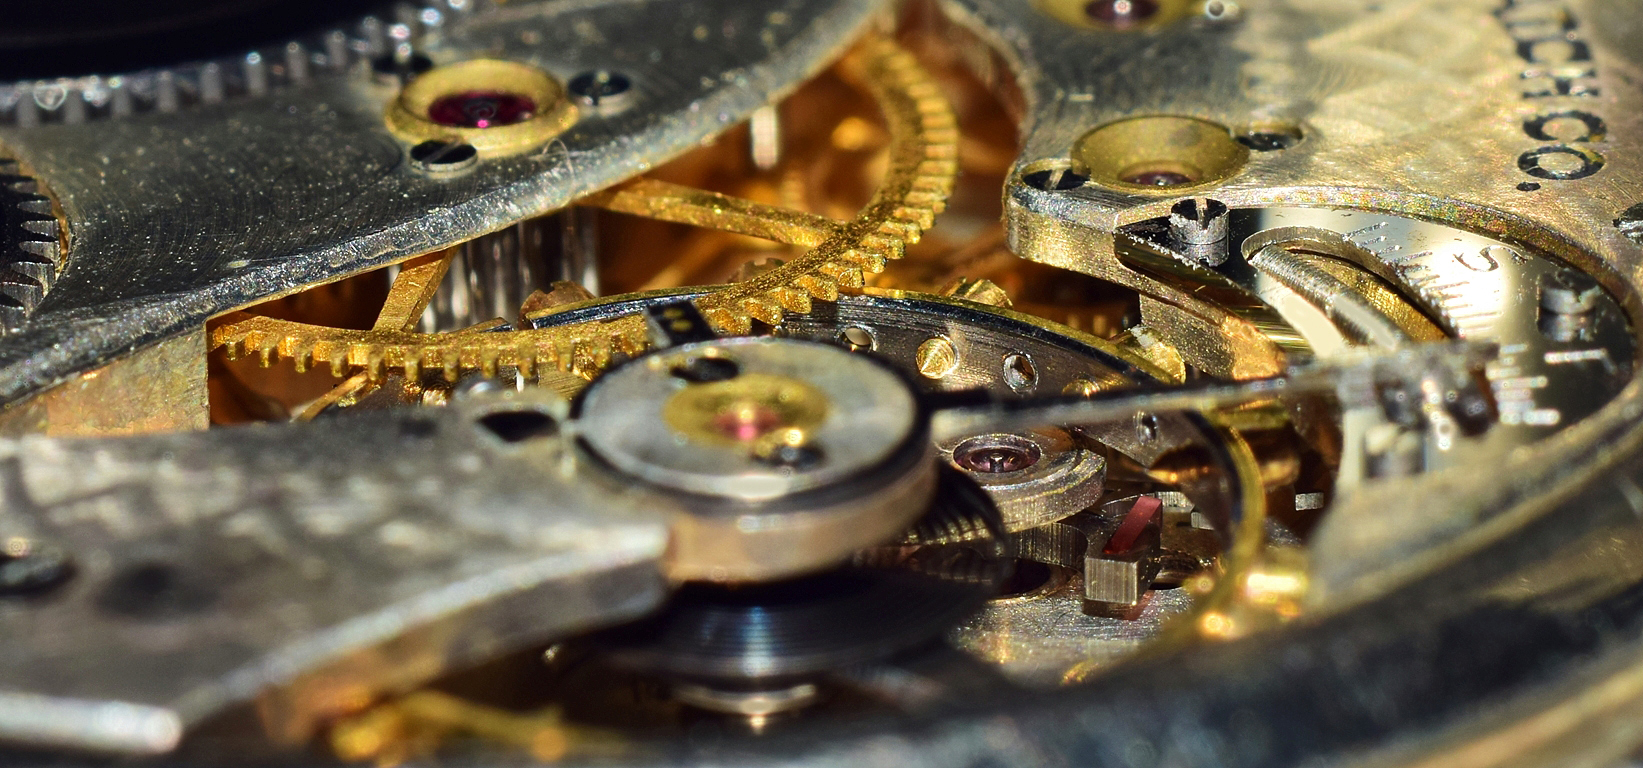 Macro Photograph: 'Legacy of the Time Grinders' by artist and photographer John Russell